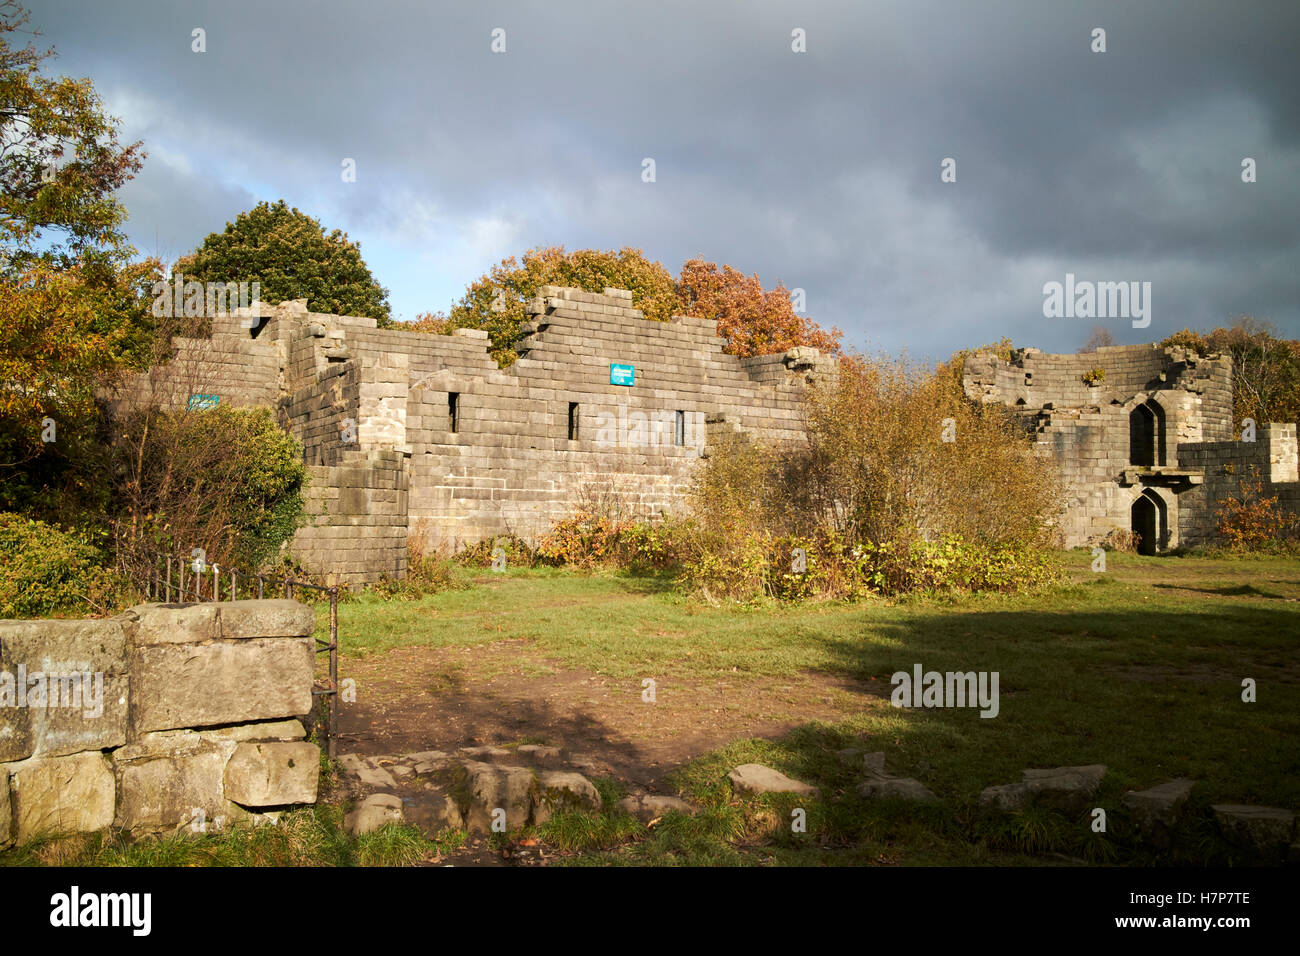 folly replica of Liverpool Castle in lever park rivington - Stock Image